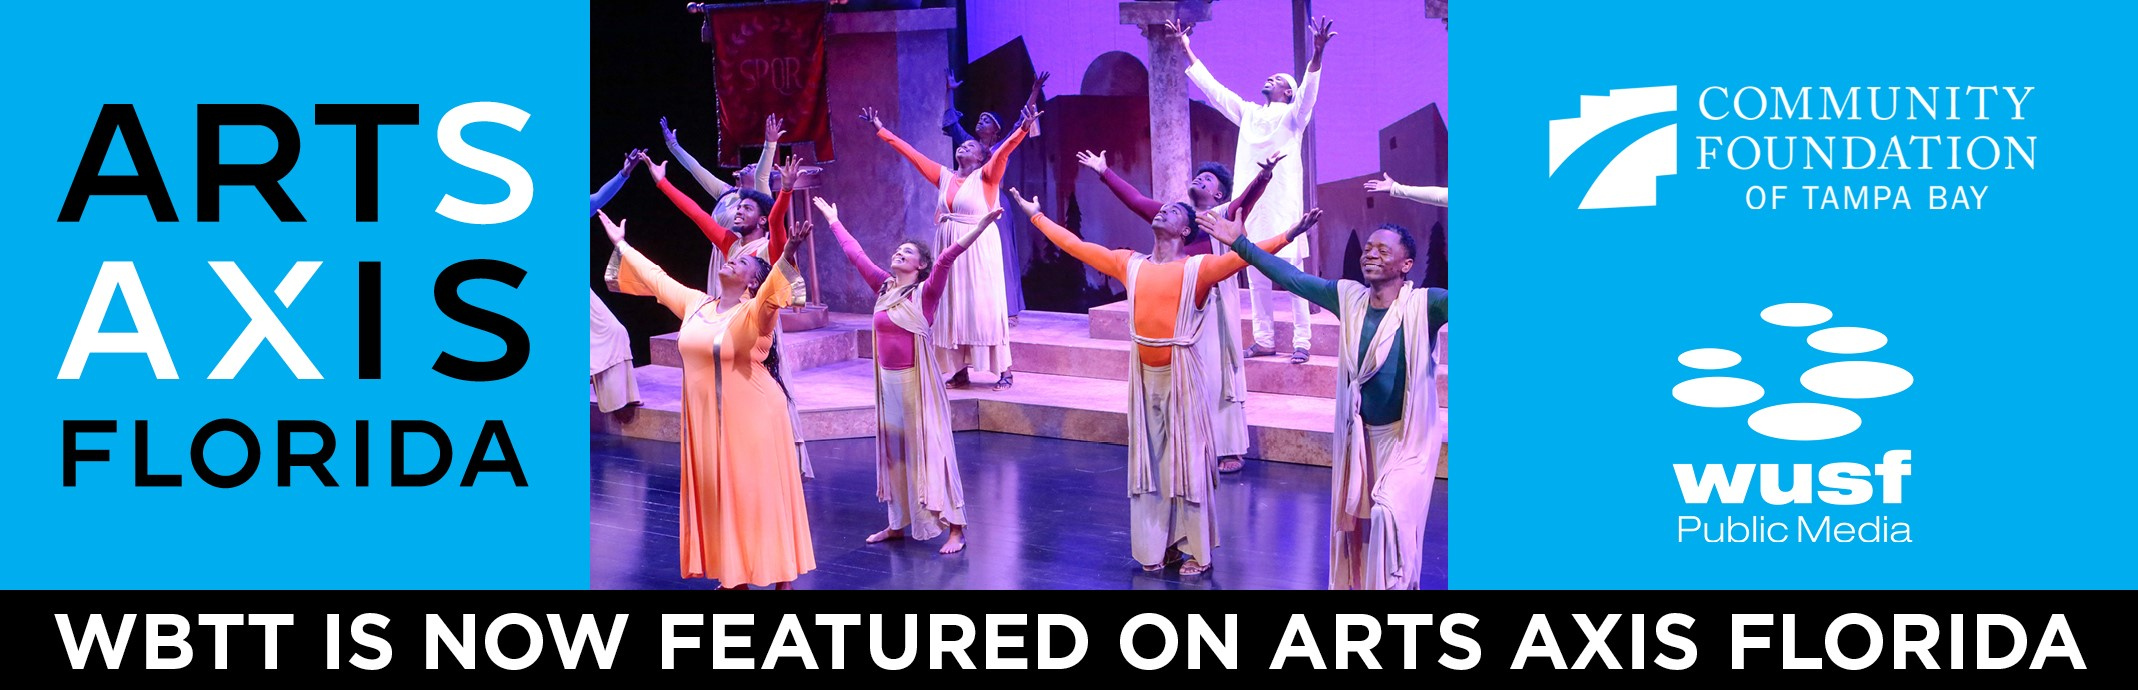 WBTT is now featured on Arts Axis Florida!